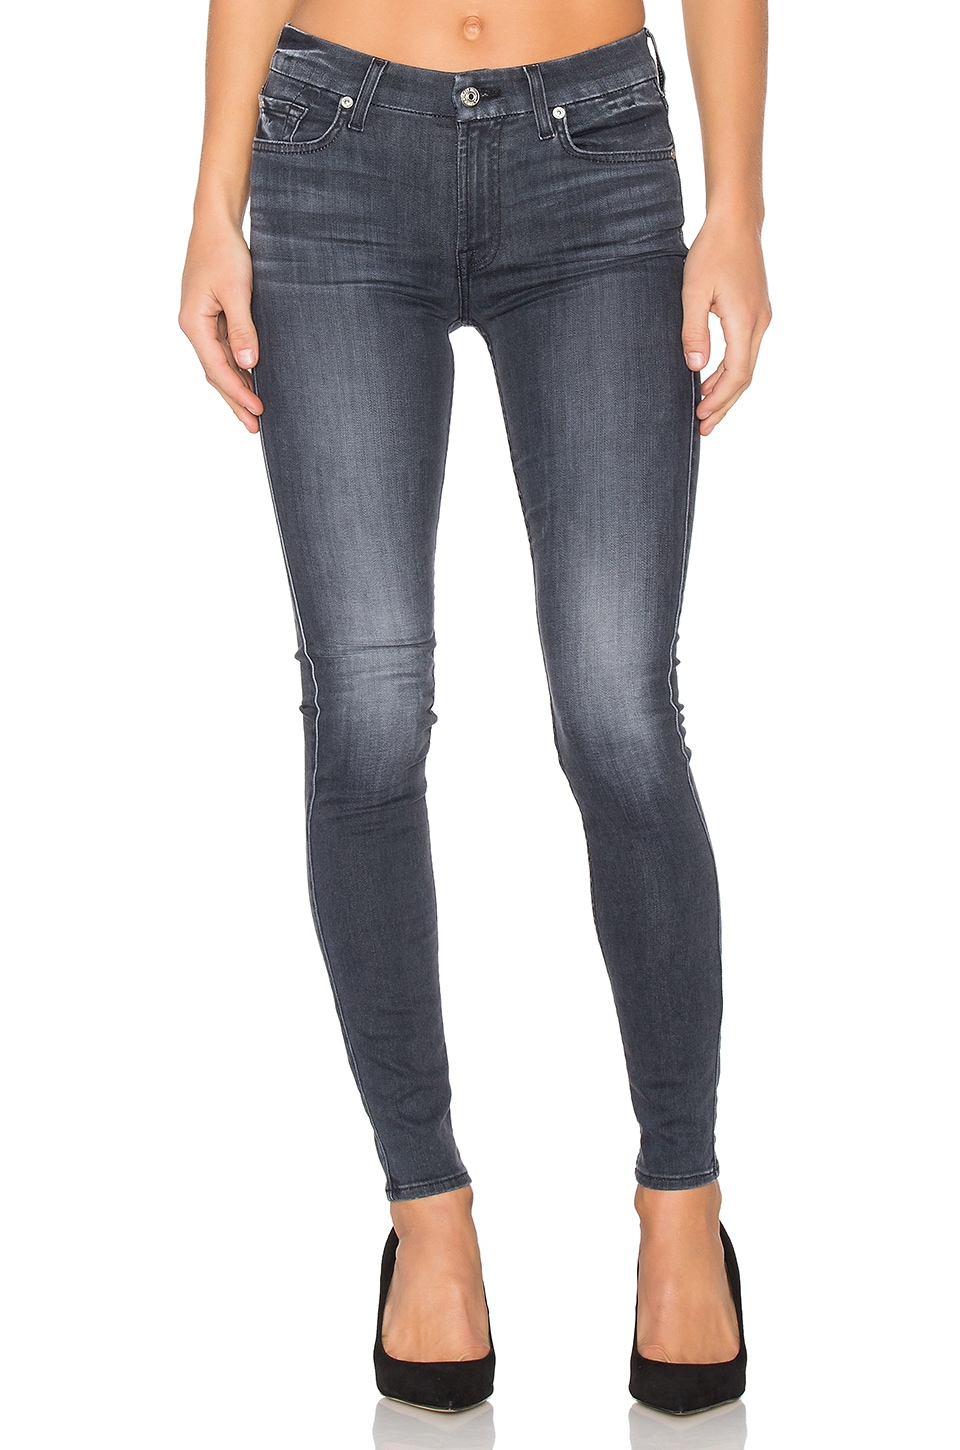 Photo of The Contour Skinny by 7 For All Mankind on sale